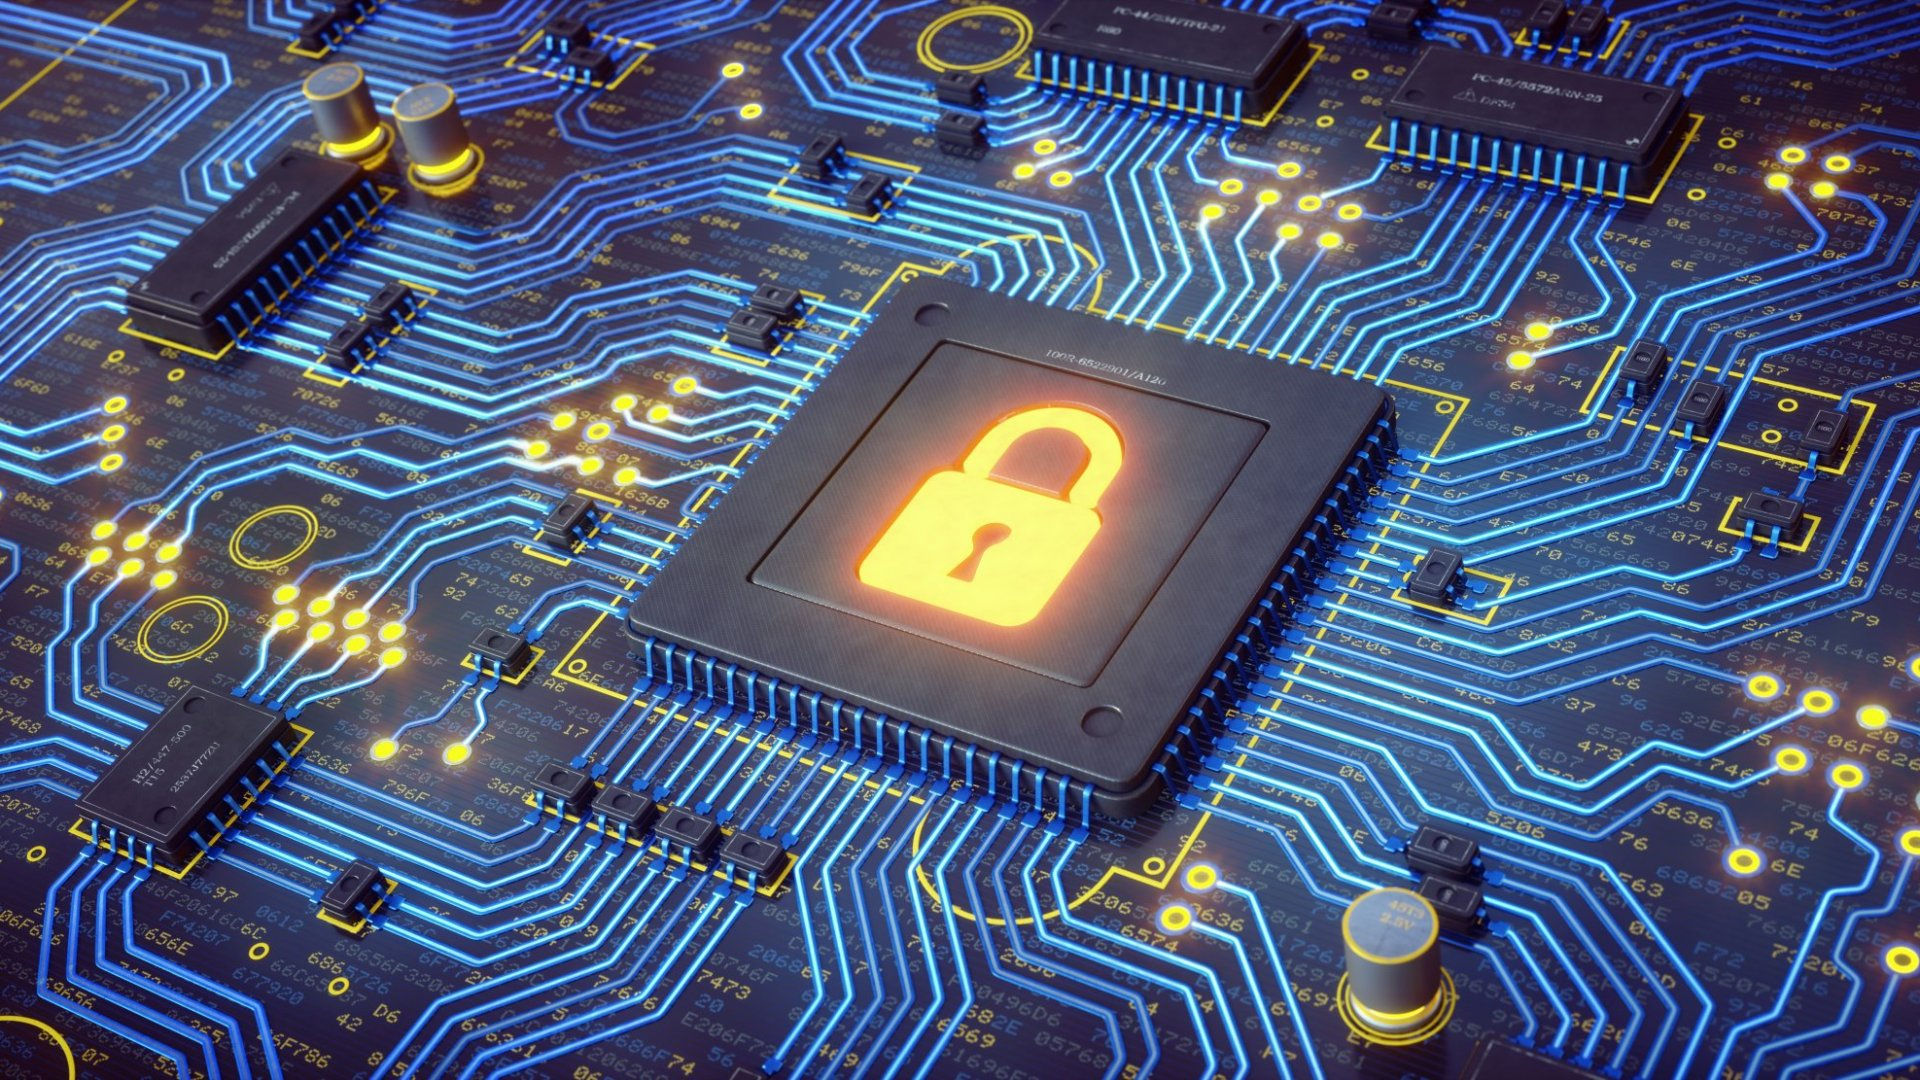 4 Myths About Cyberattacks and What You Can Do to Protect Your Company's Data